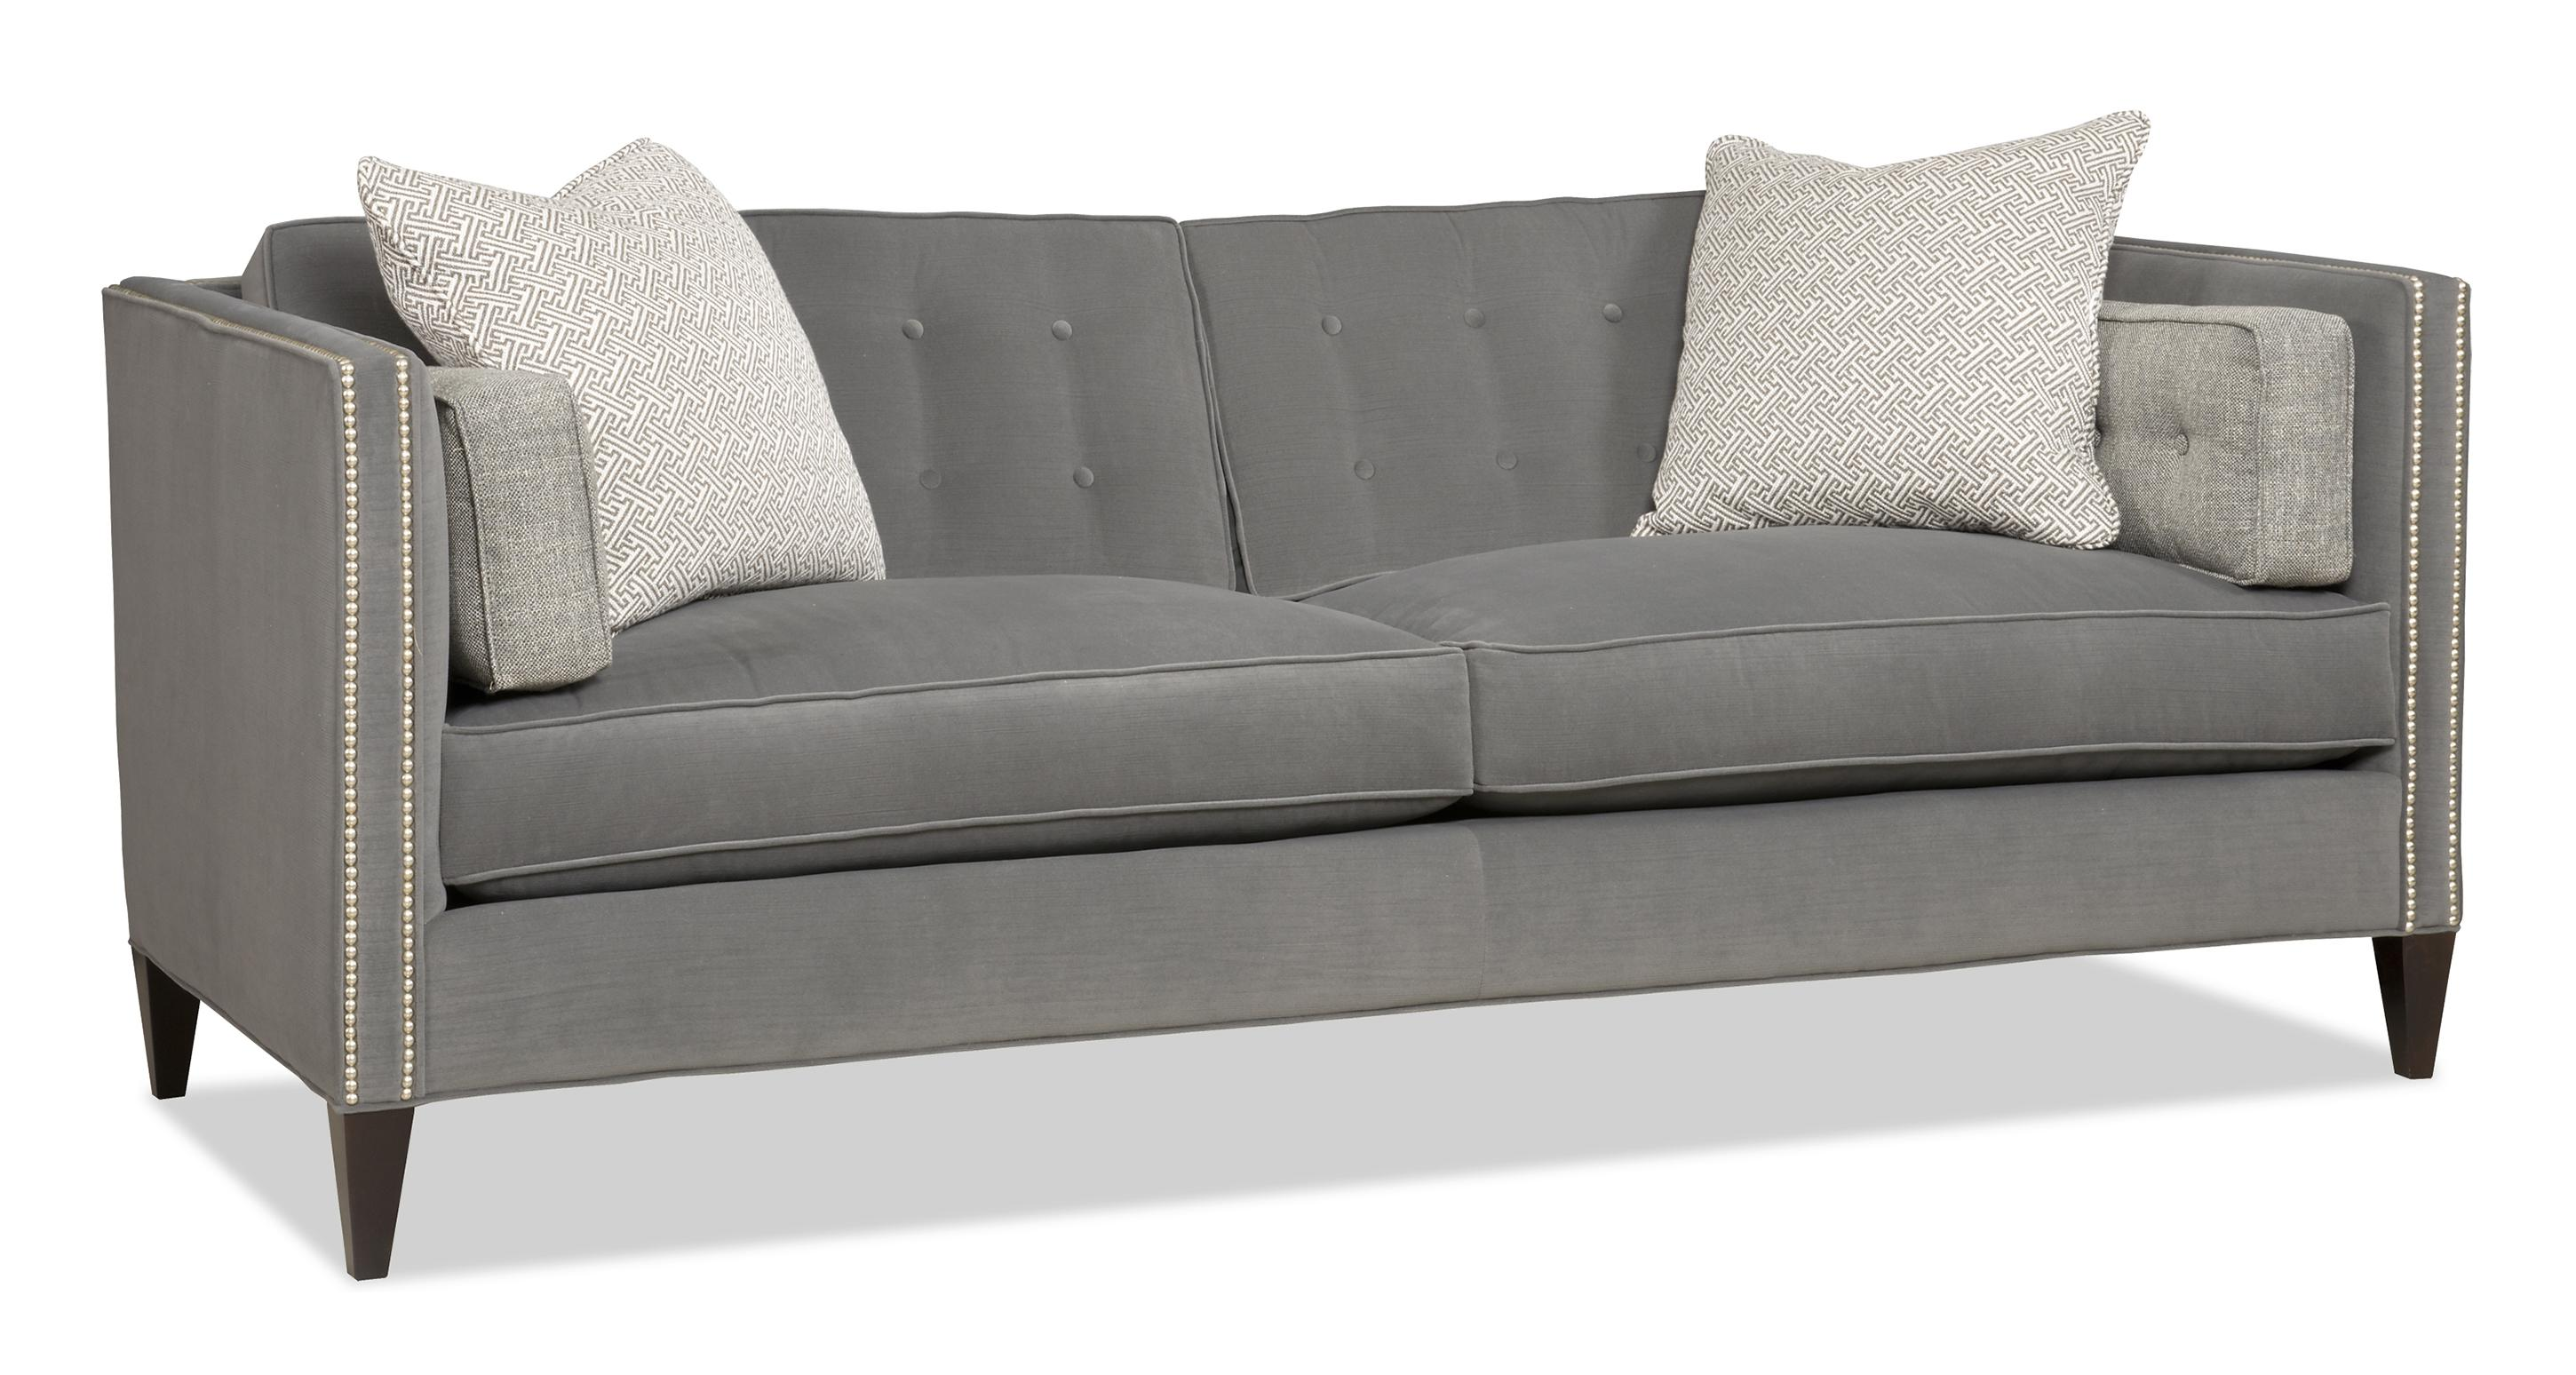 Eaton Furniture Sam Moore Eaton Contemporary Two Over Two Sofa With